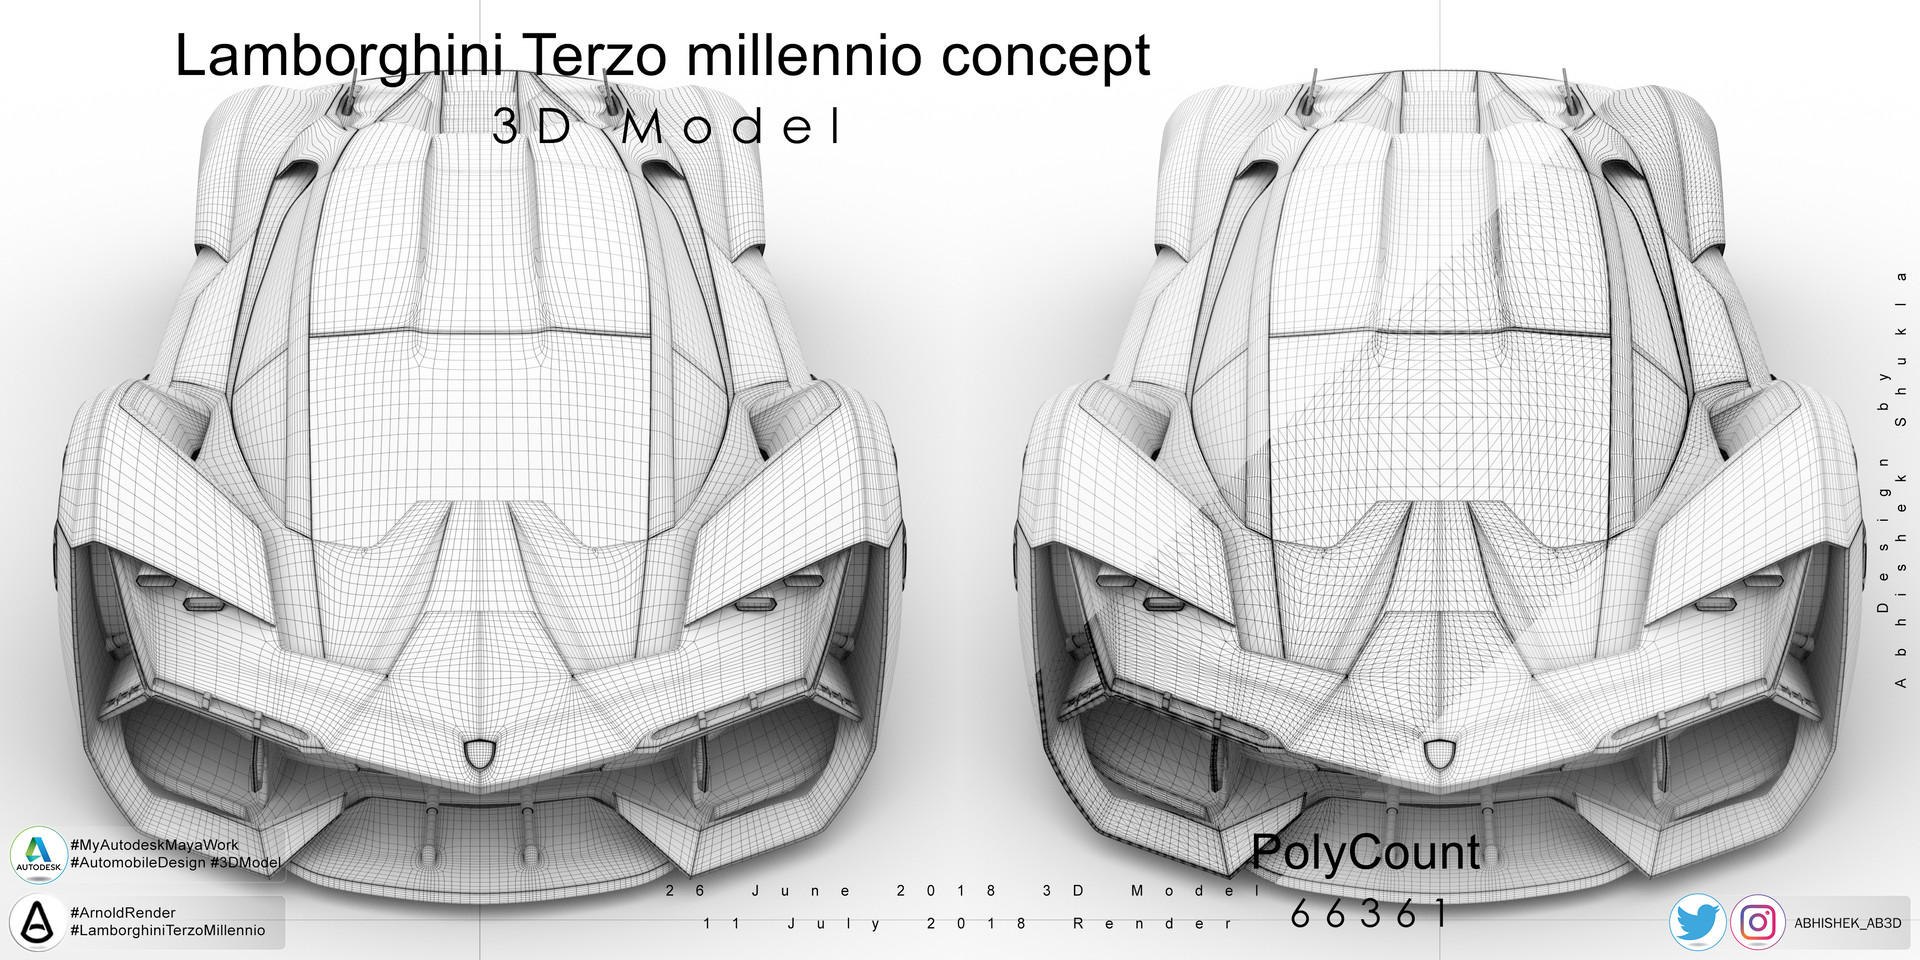 lamborghini terzo millennio 3d model front view as smooth polygon view with wireframe  [ 1920 x 960 Pixel ]